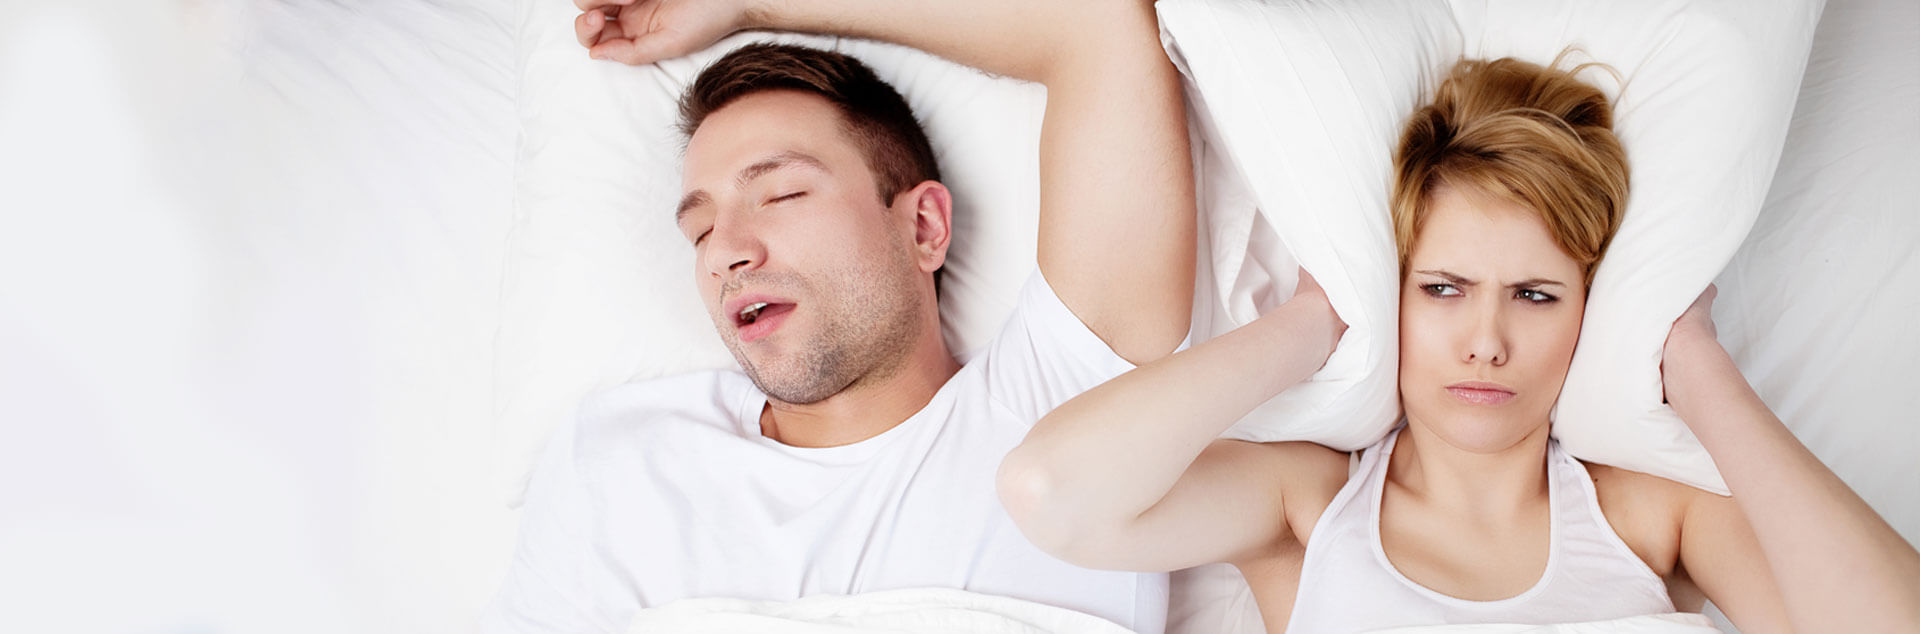 Couple sleeping while female is unhappy due to sleep apnea snoring of the male